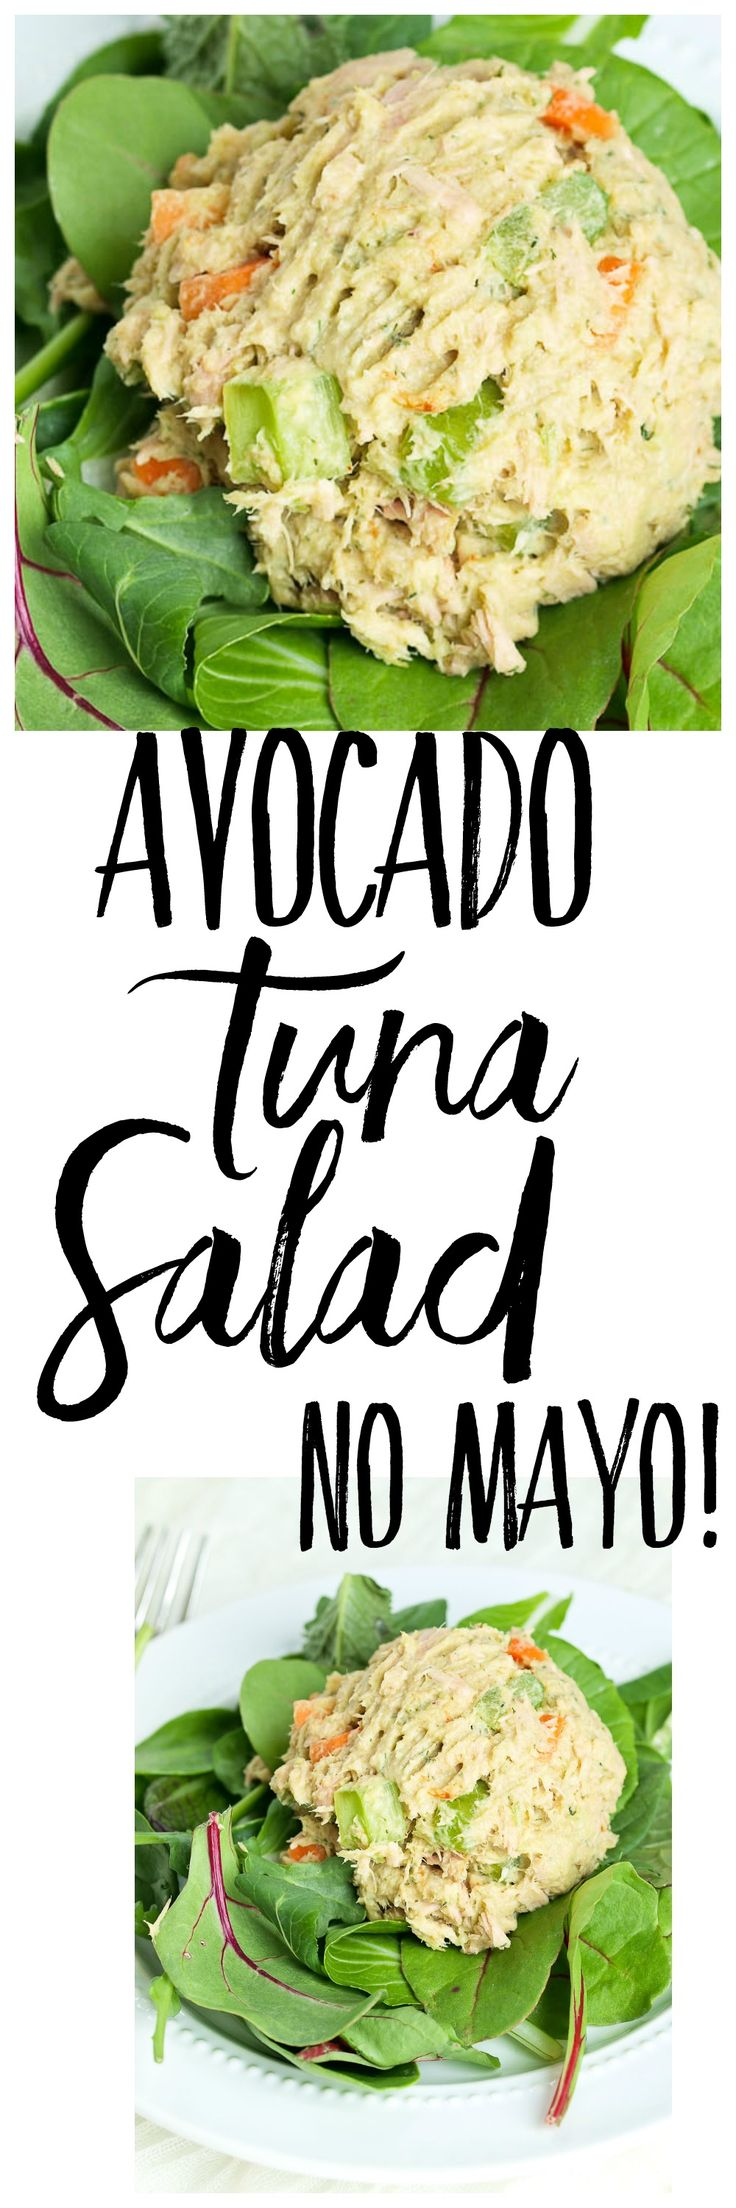 This Avocado Tuna Salad recipe is made with no mayo! This makes a great…